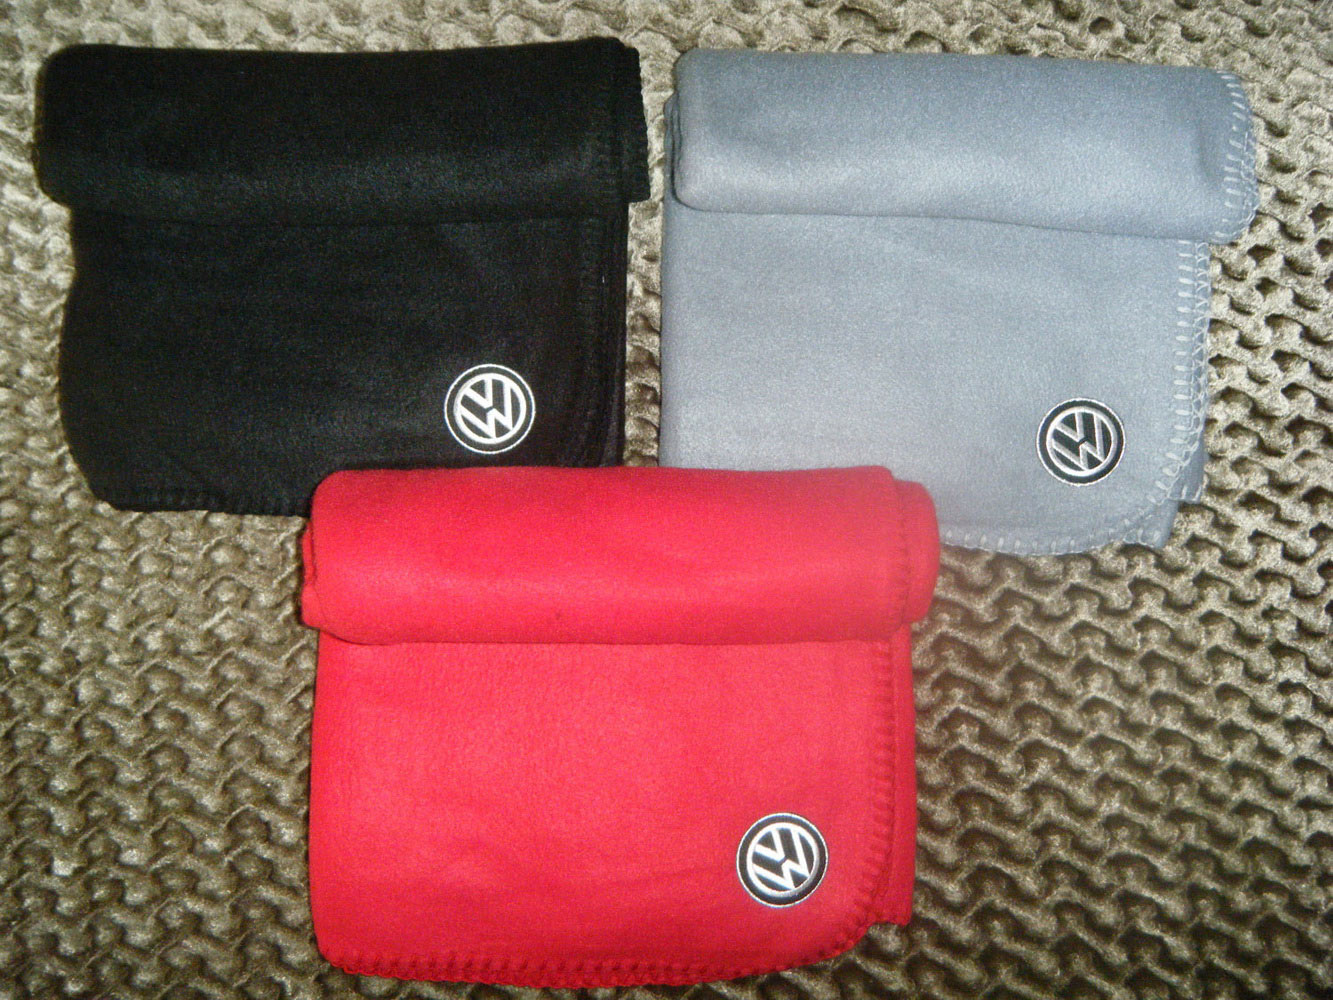 Volkswagen logo on embroidered blanket